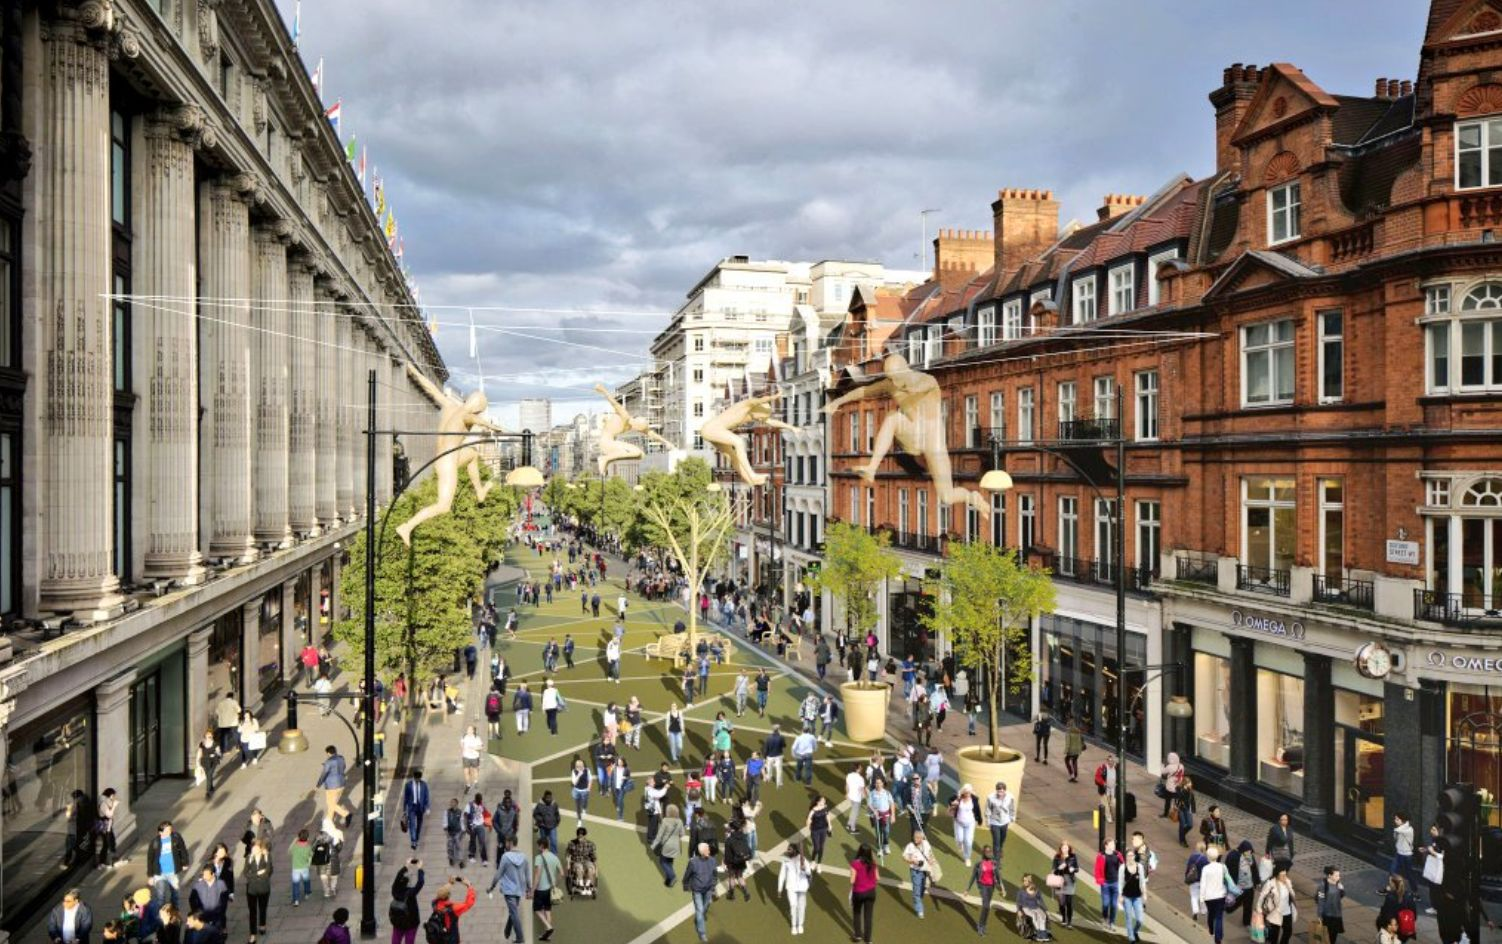 Parts Of Oxford Street Could Be Pedestrianised By Next Year, Sadiq Khan